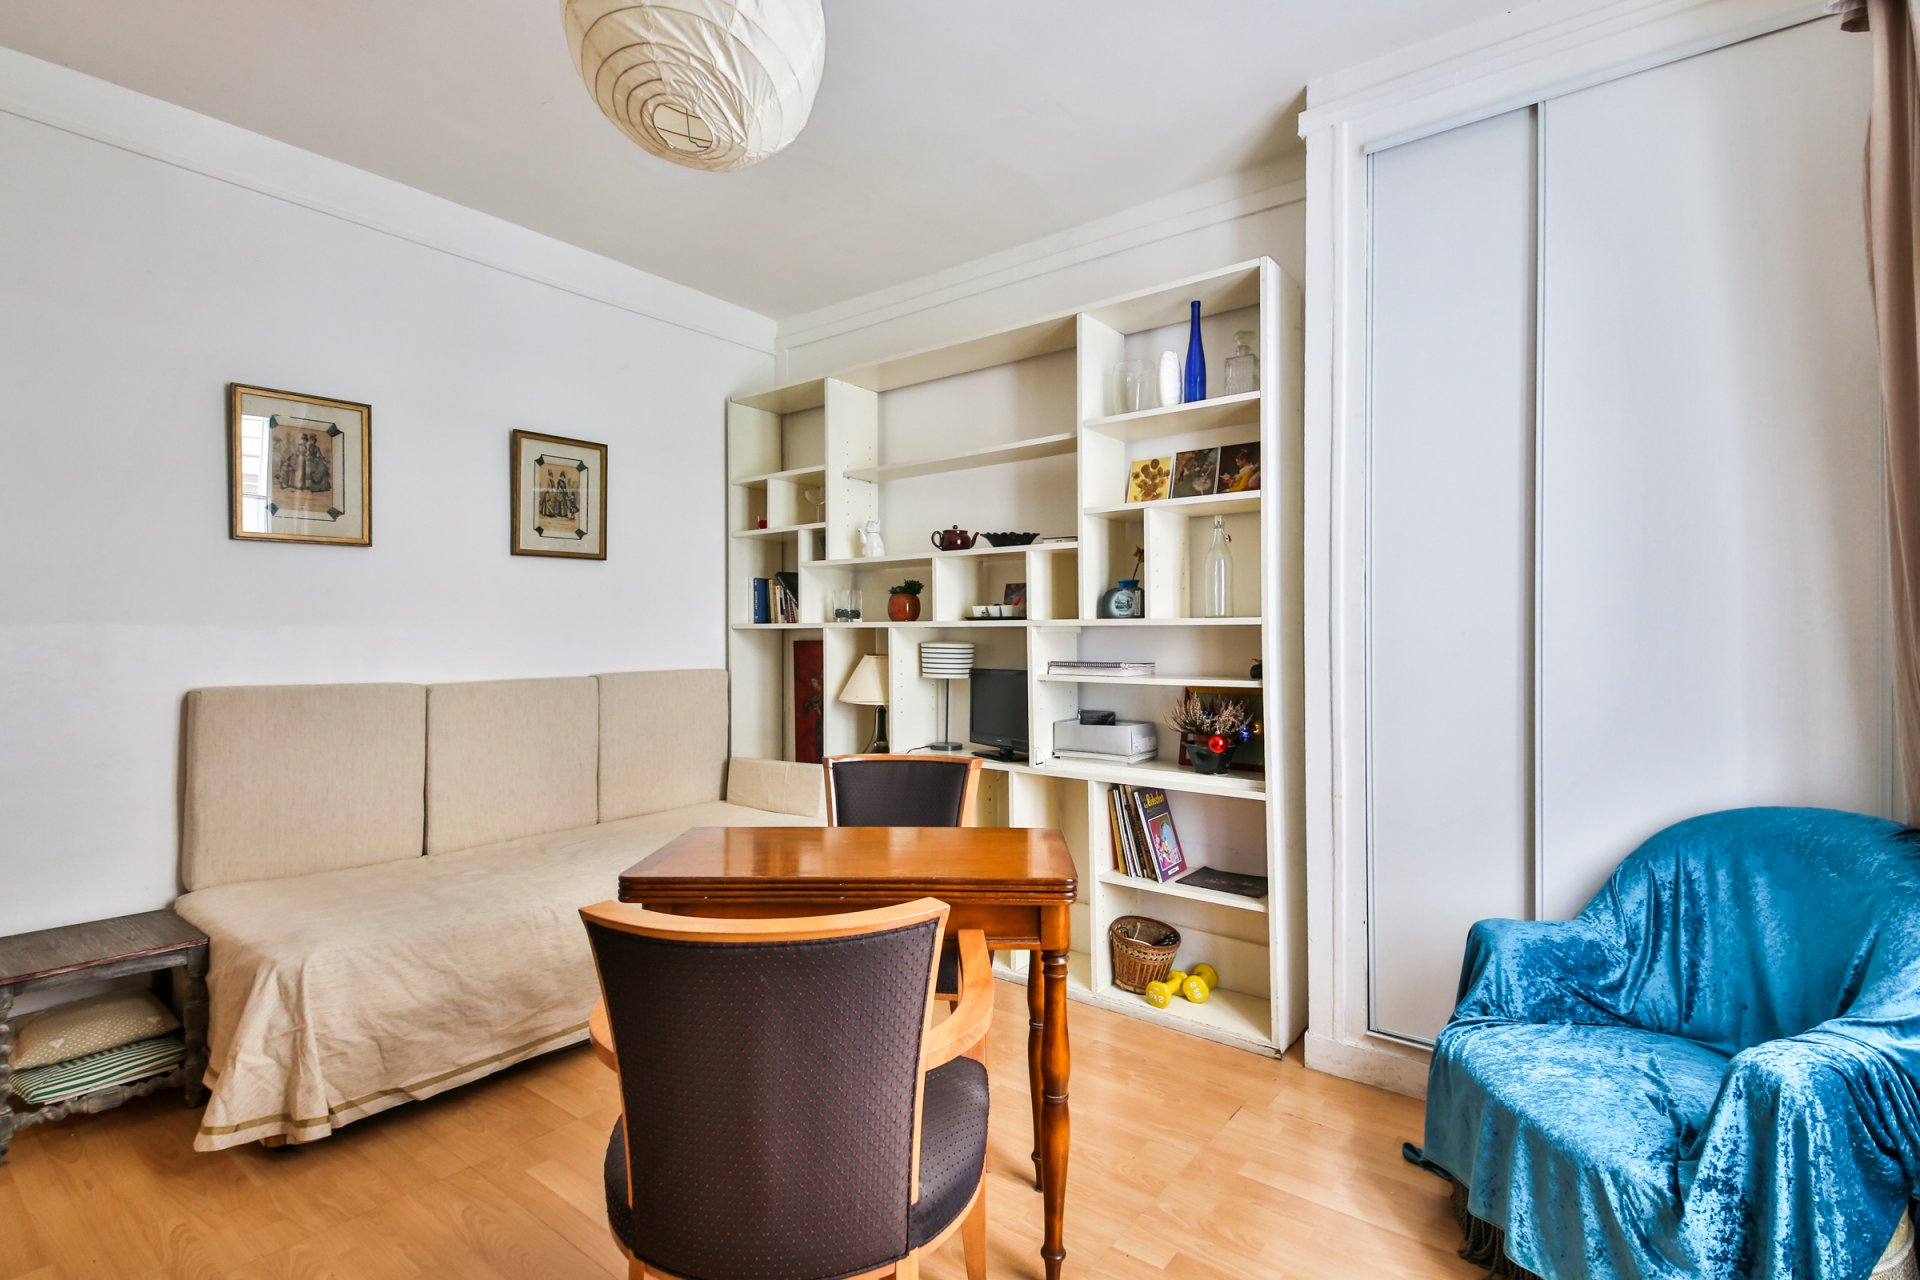 EXCLUSIVITE - ABBESSES - PIED A TERRE - IDEAL PROFESSION LIBERALE